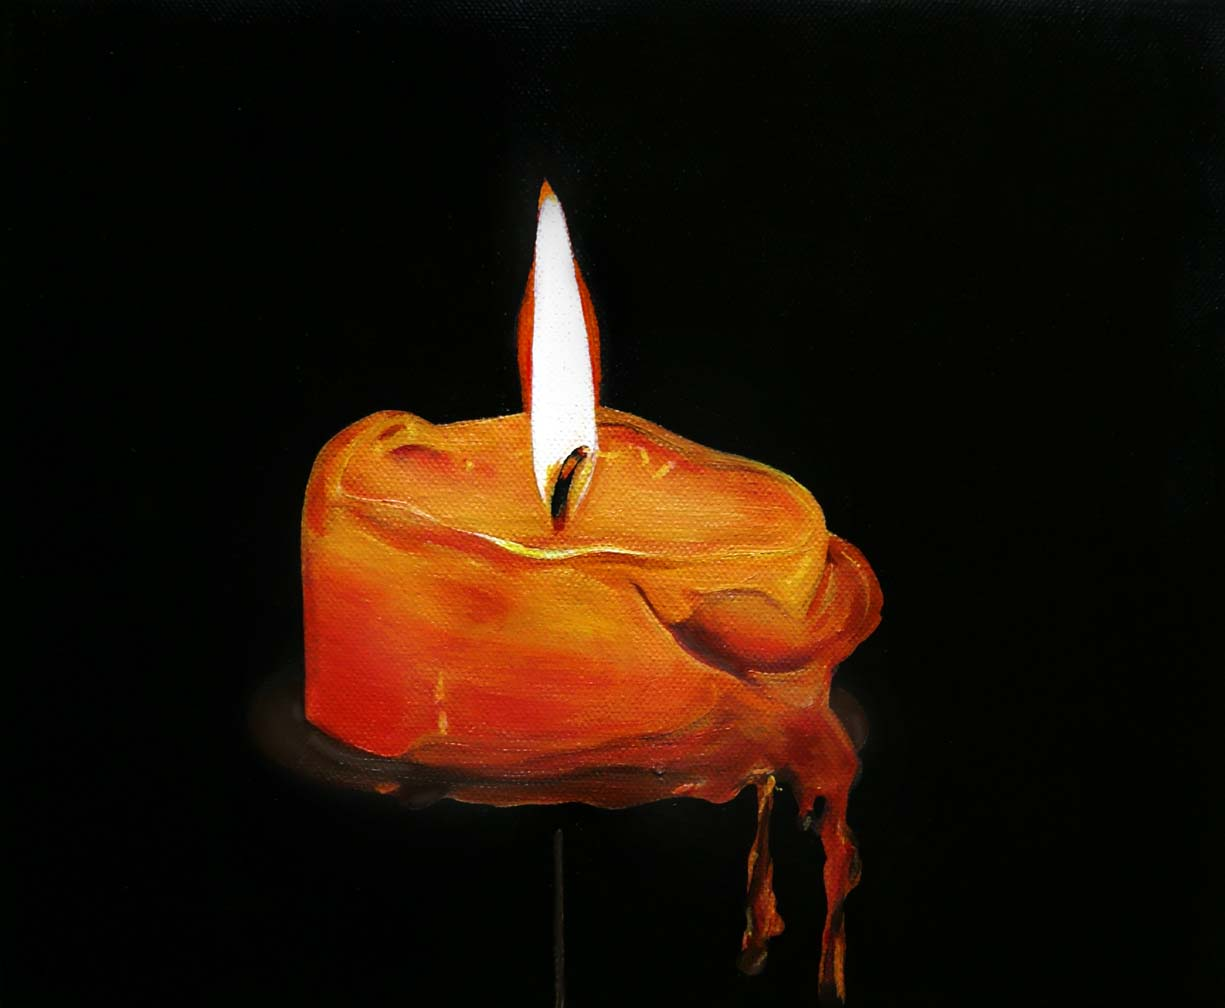 How To Paint A Candle With Acrylic